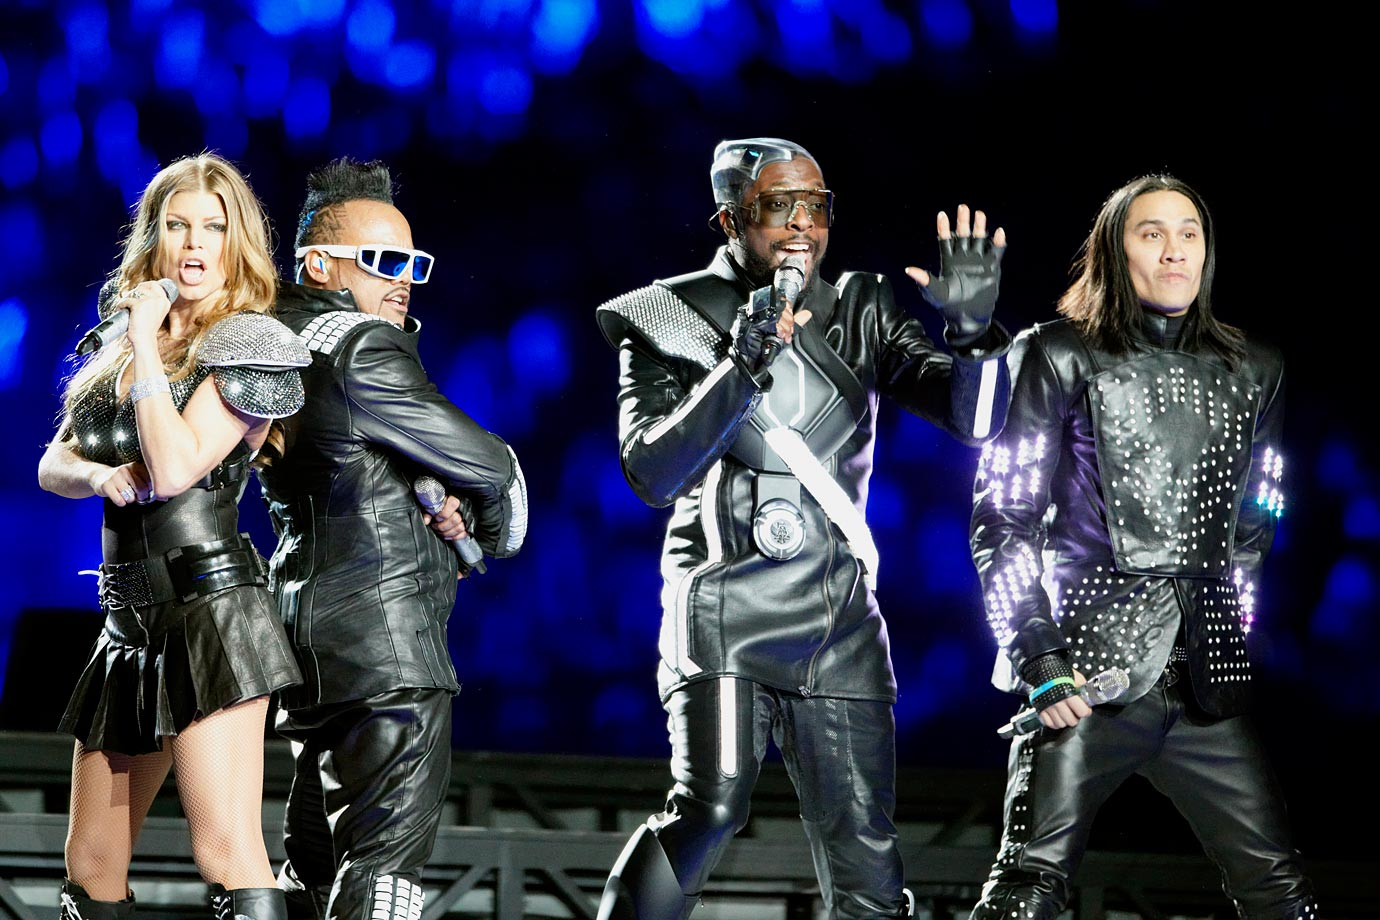 Big on style but lacking substance, the Black Eyed Peas made a big entrance, descending from the ceiling of Cowboy Stadium with an impressive light, but their performance went downhill from there. Between the almost complete lack of movement from the group and Fergie's off-key singing, the Black Eyed Peas failed to live up to the hype of the first under-50 Super Bowl halftime performers since Janet Jackson and Justin Timberlake.